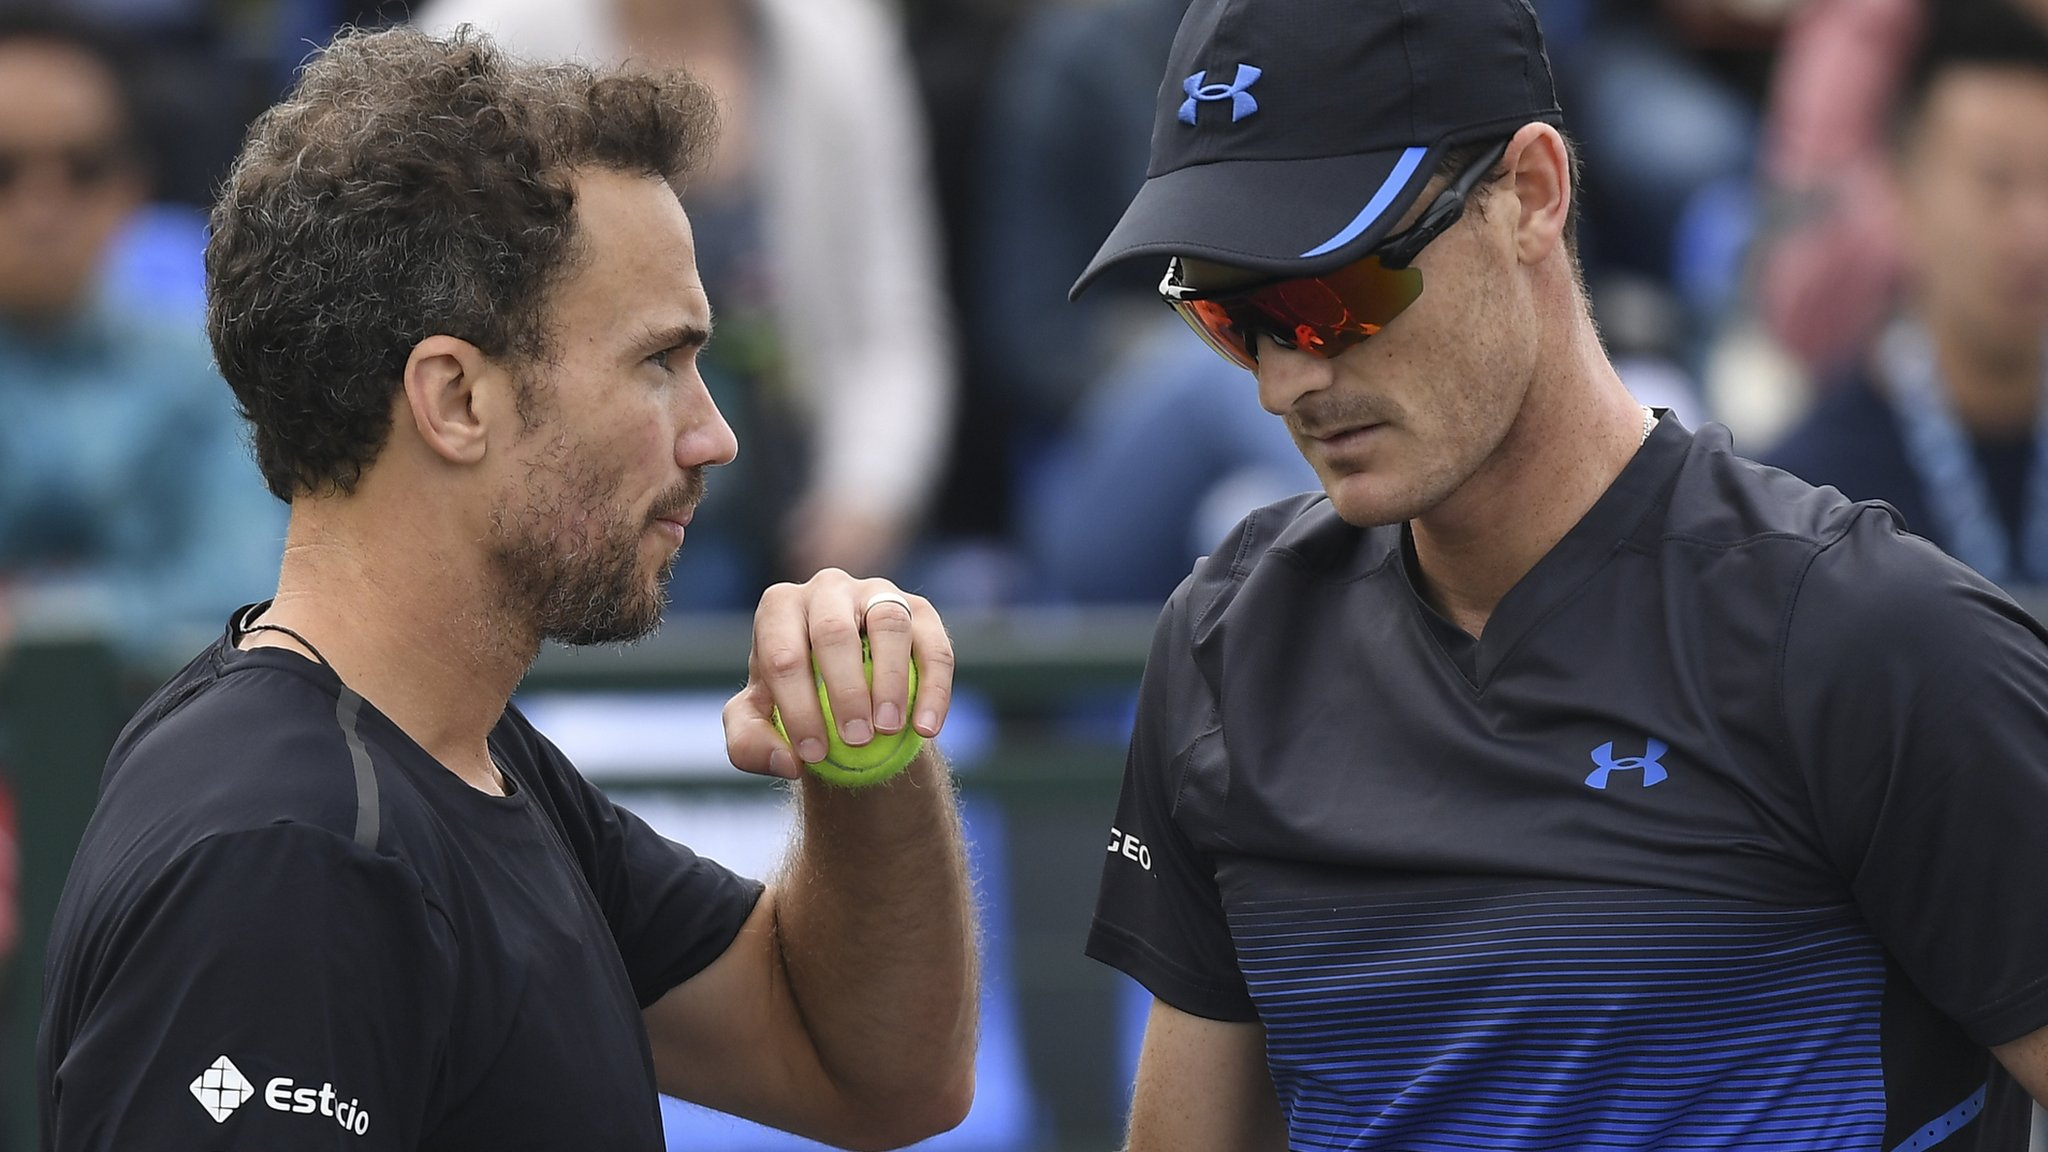 Jamie Murray & Bruno Soares qualify for ATP Finals by reaching Shanghai Masters semis